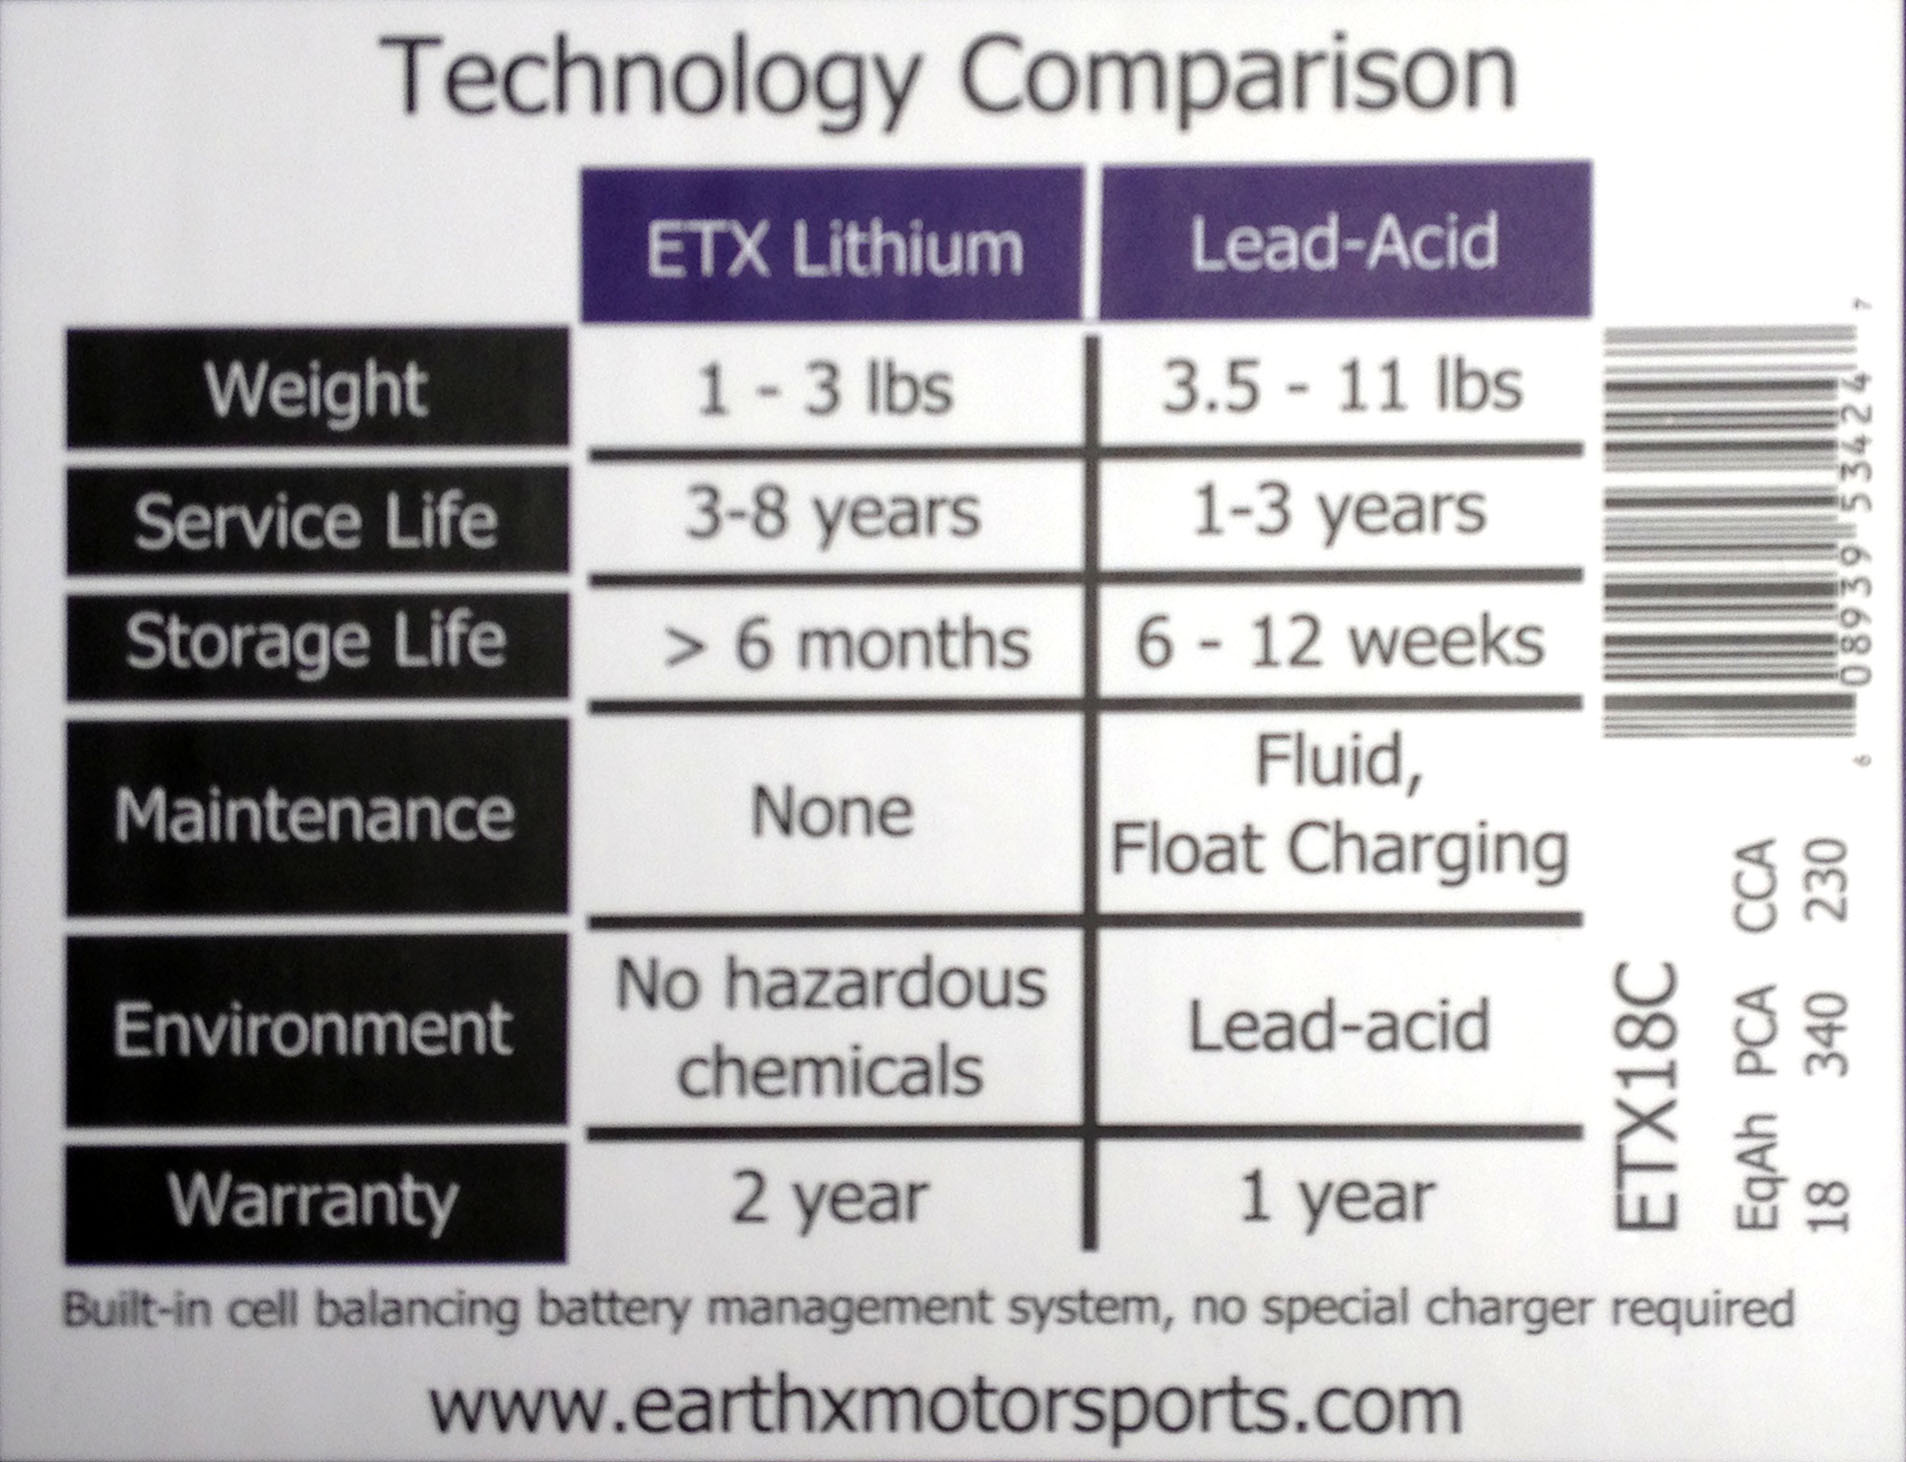 Are lithium batteries ready for the real world triumph battery technology comparison chart on the package nvjuhfo Images